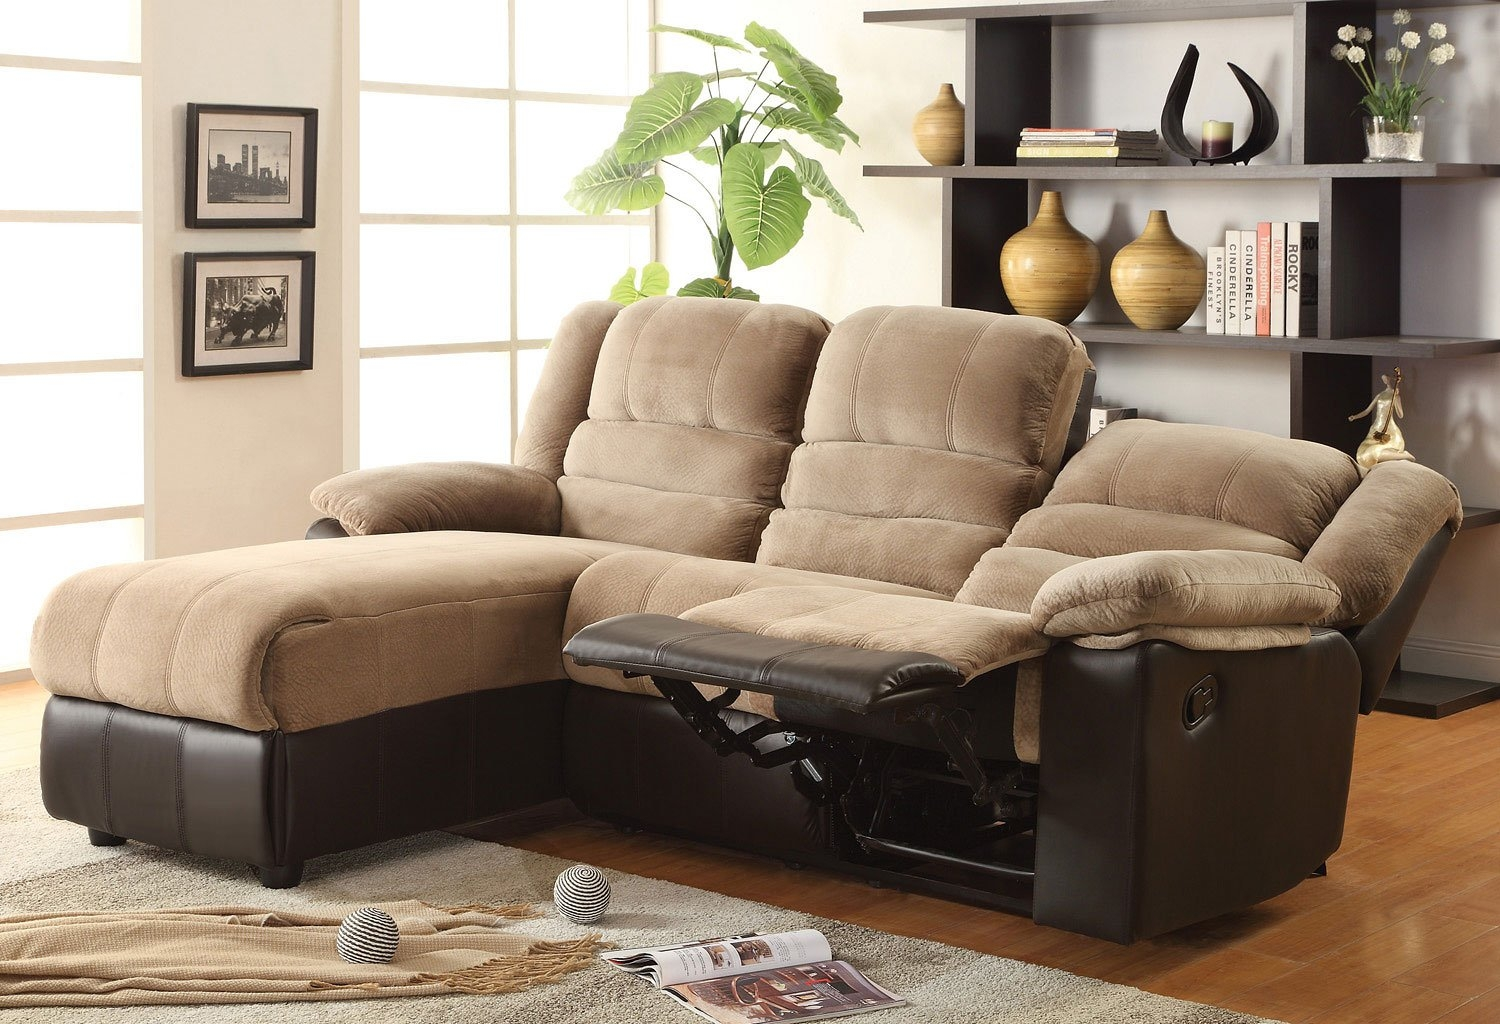 small sectional sofa with recliner visual hunt rh visualhunt com small sectional sofa with recliner and chaise sectional sofa with chaise recliner and sleeper